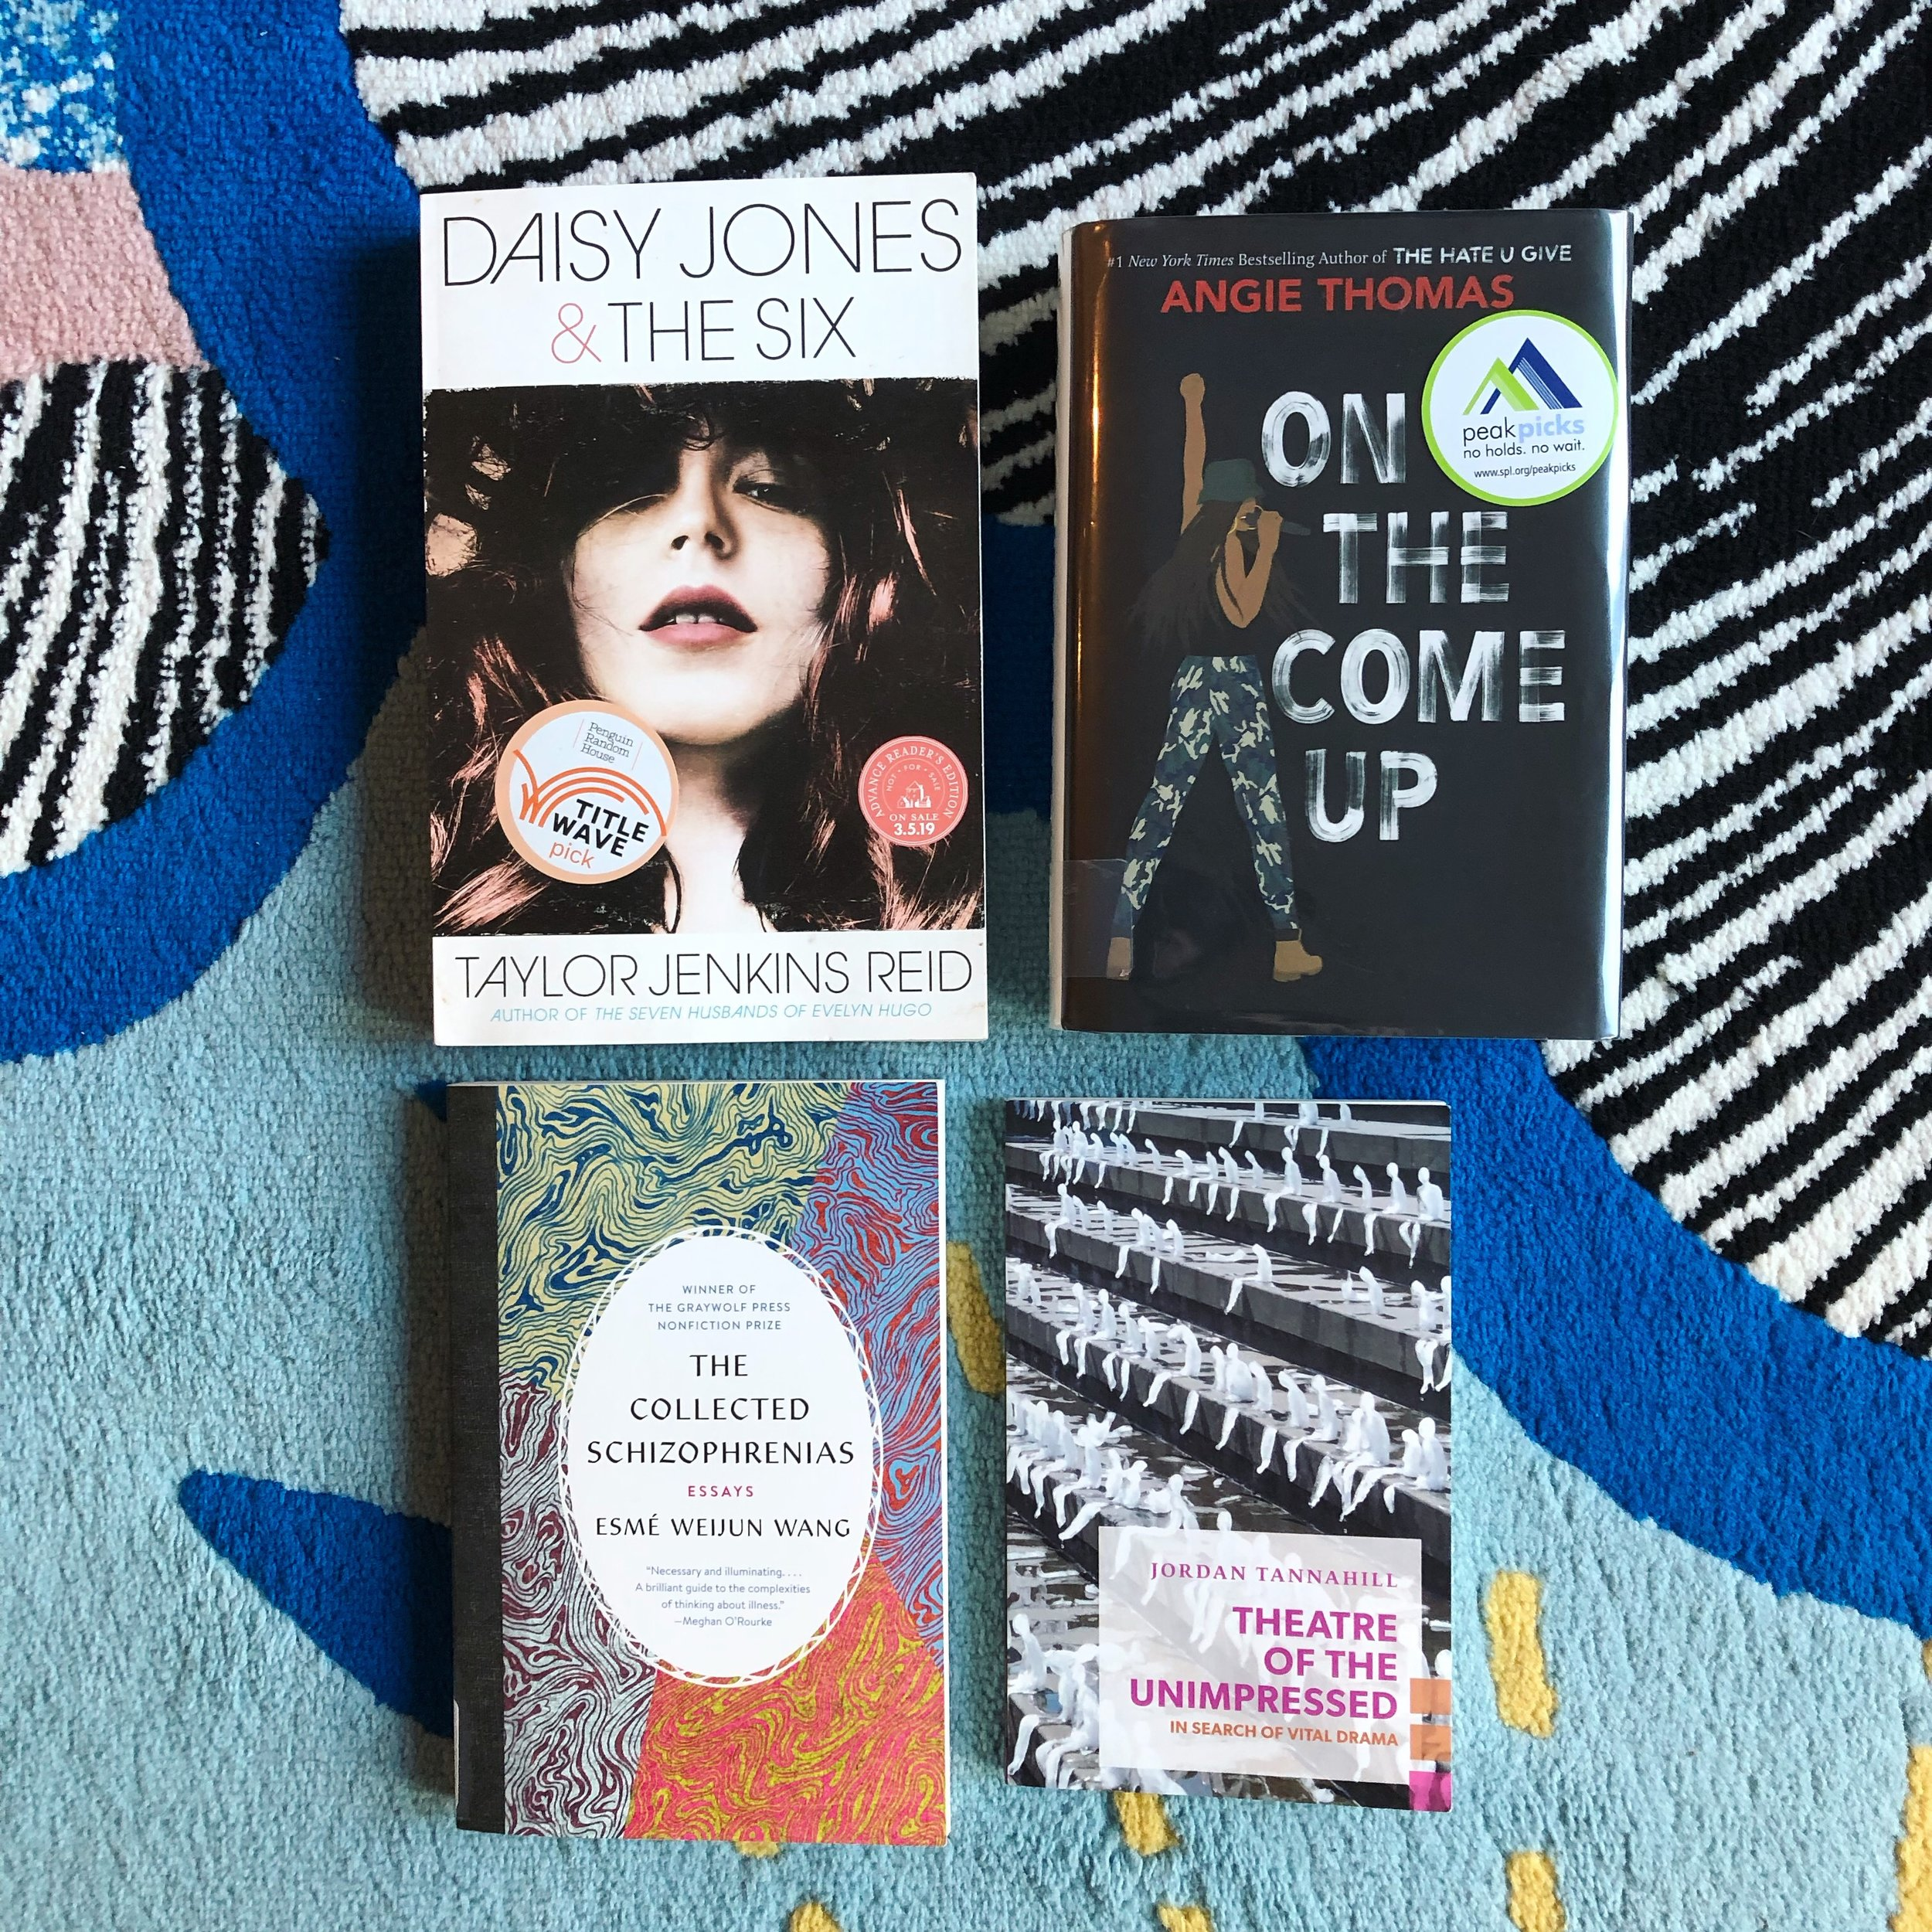 I read a couple of duds too, but these four books were excellent.